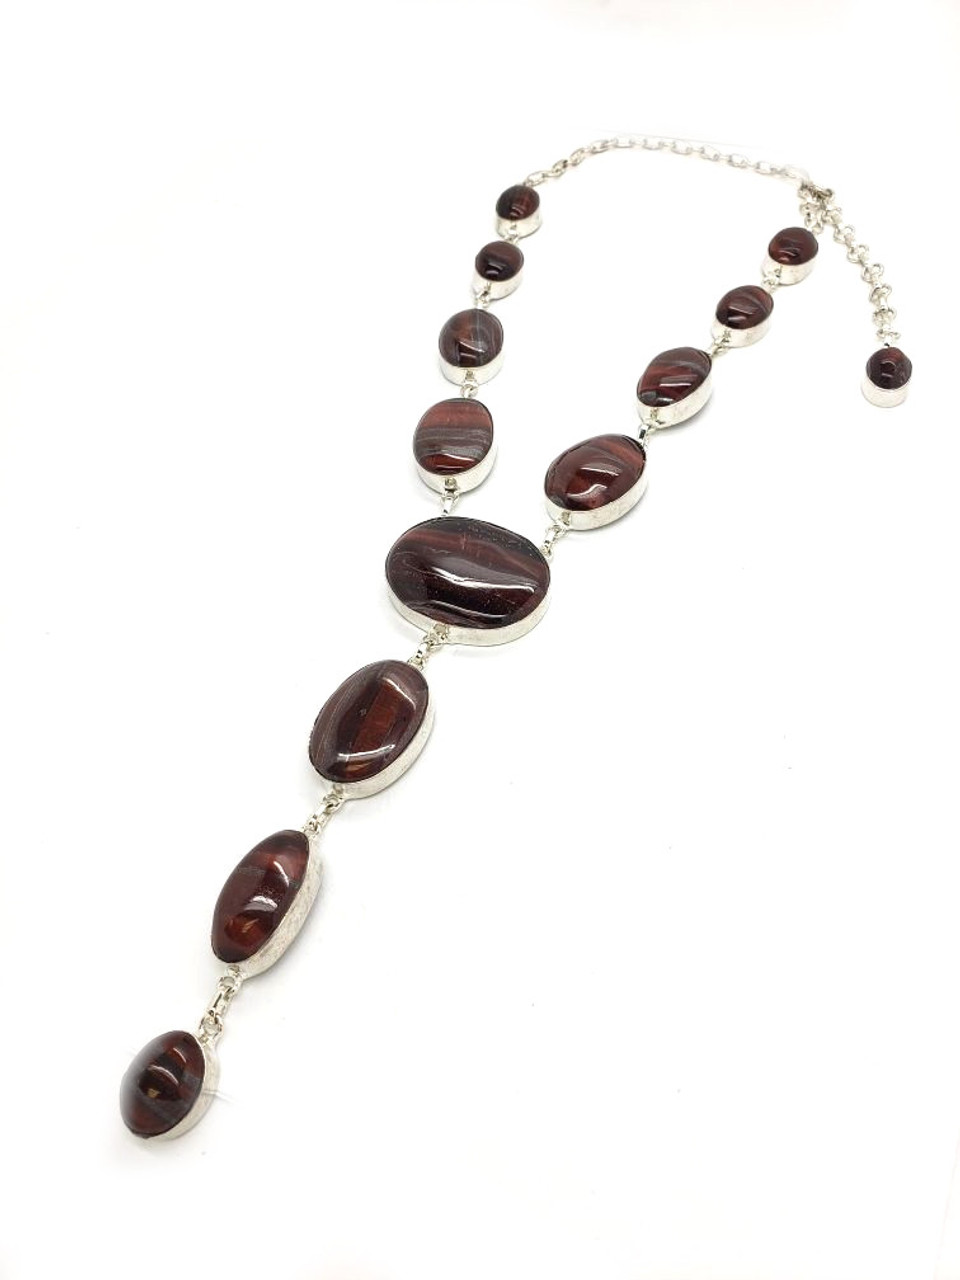 TALL TREE NECKLACE